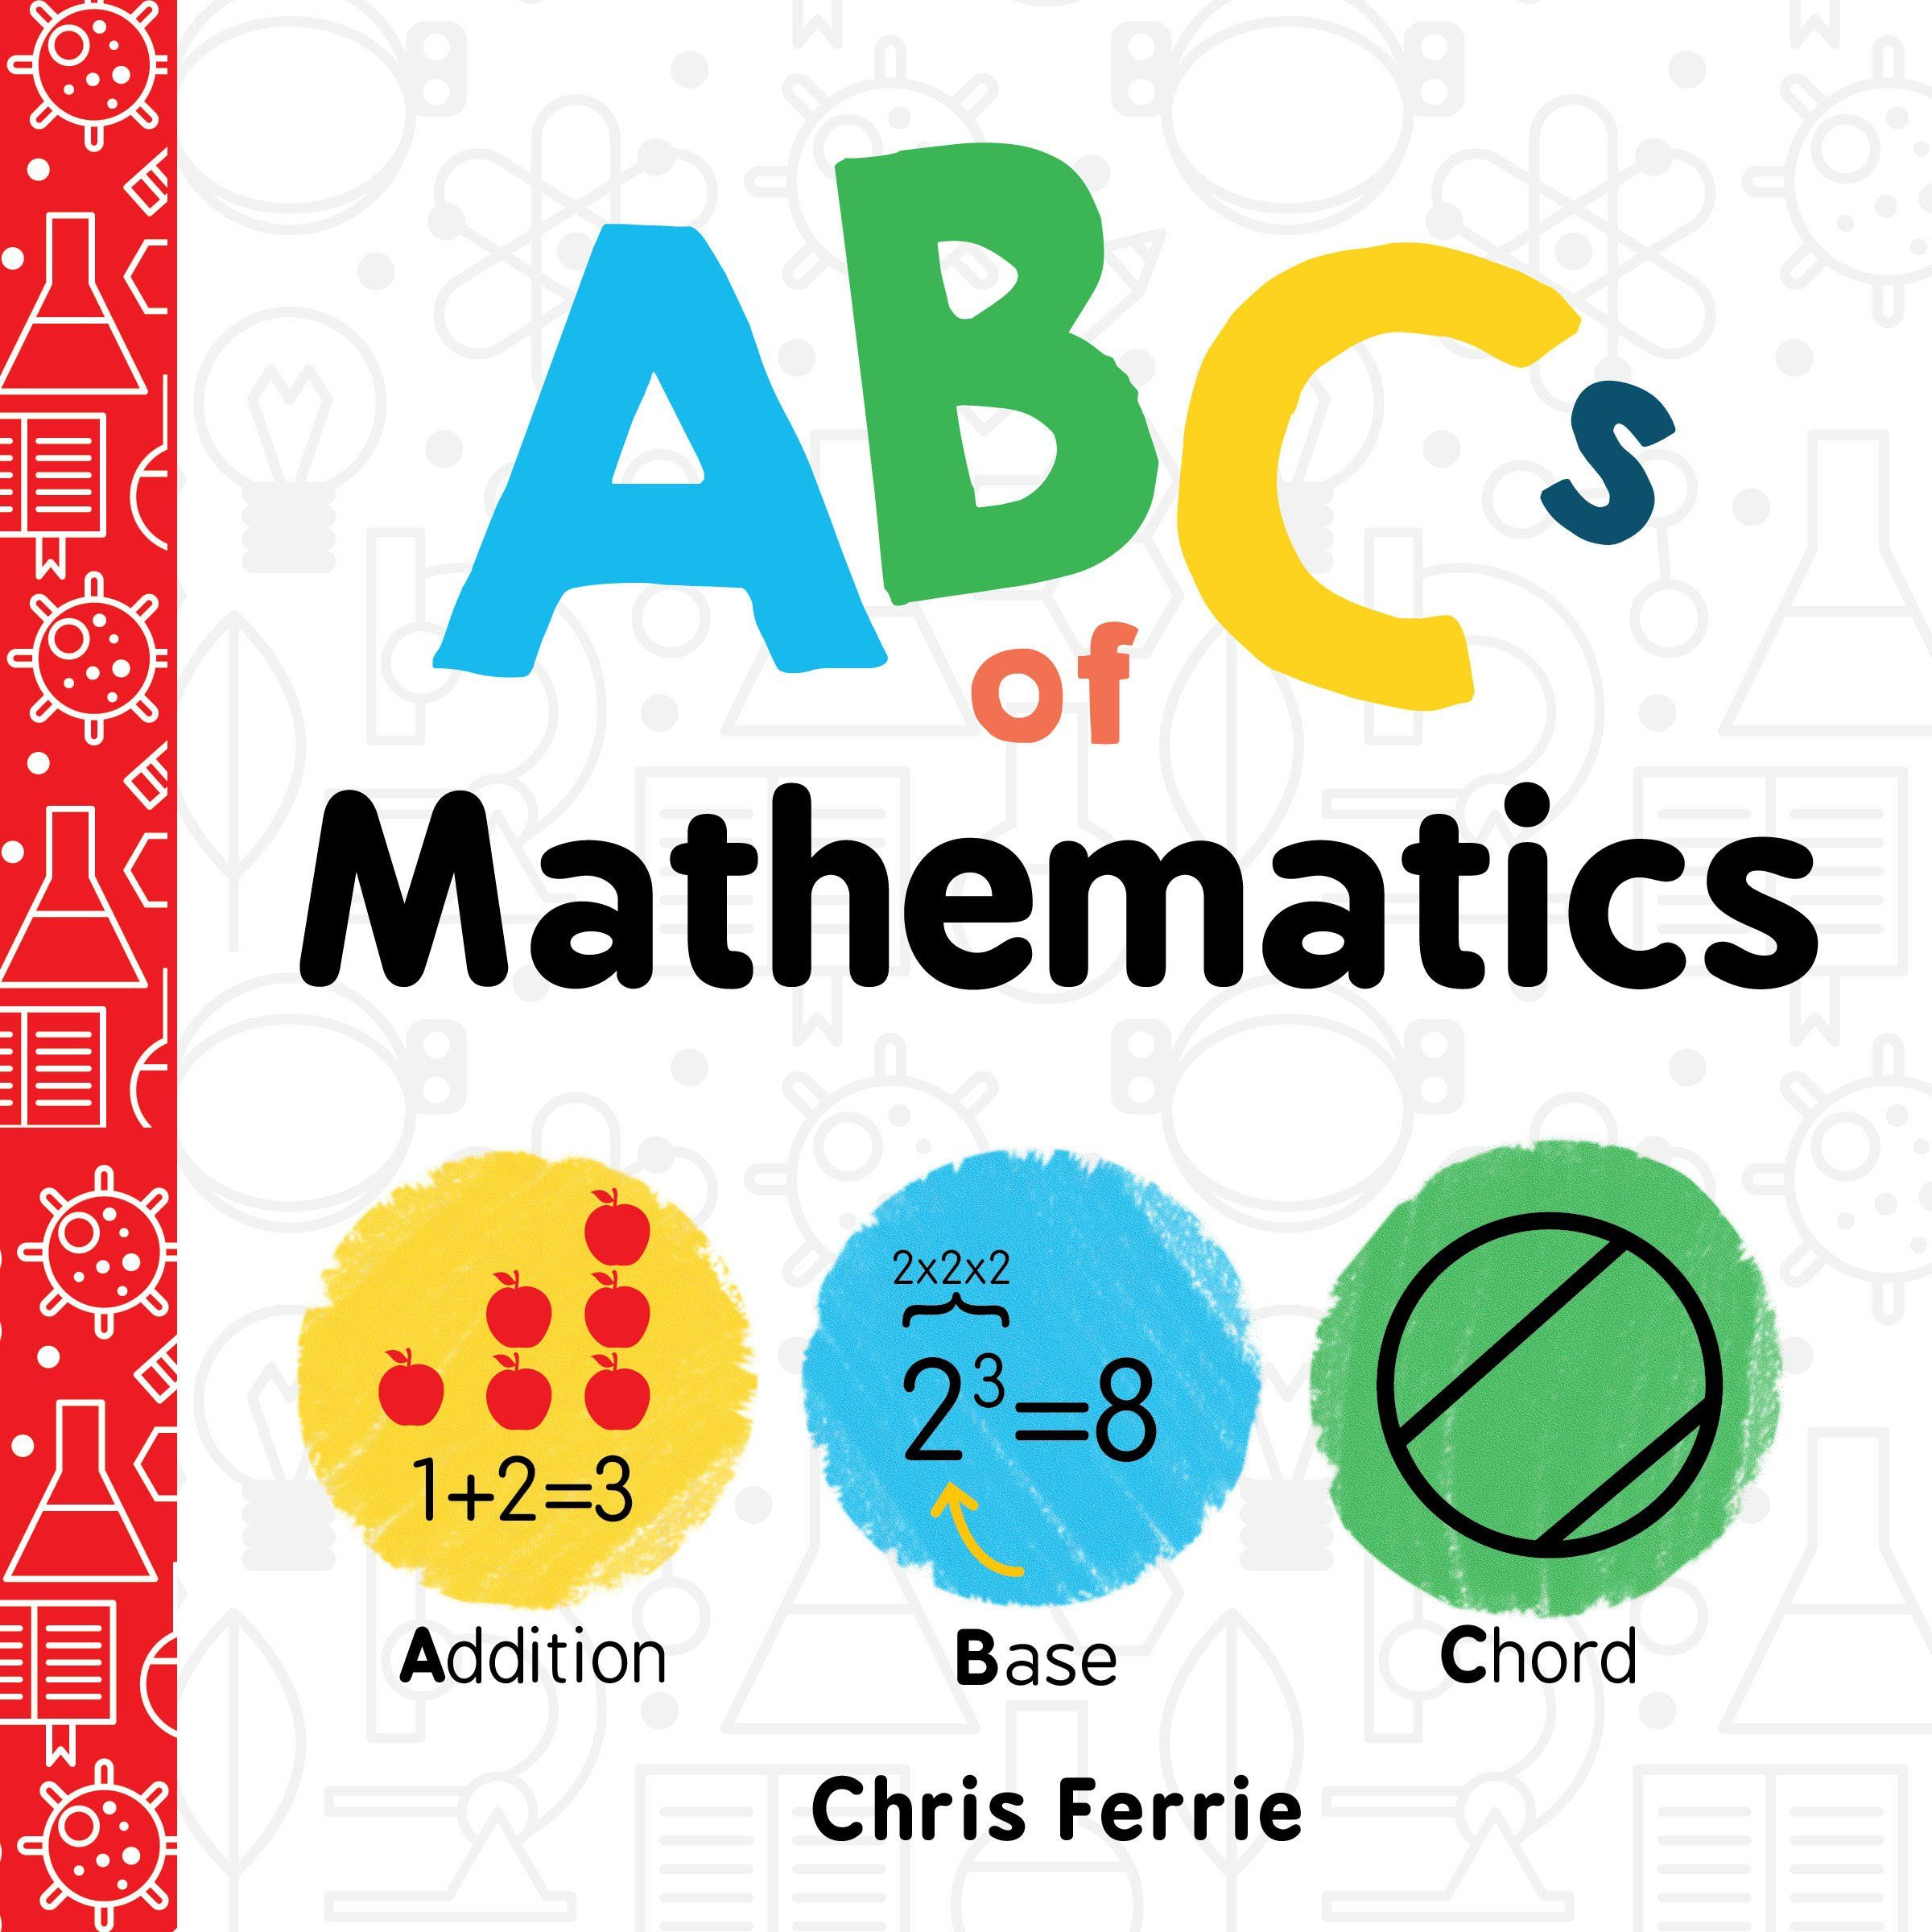 Addition addition zero clipart clipart library Sourcebooks) ABC\'s of Mathematics From addition to zero, The ABCs of ... clipart library